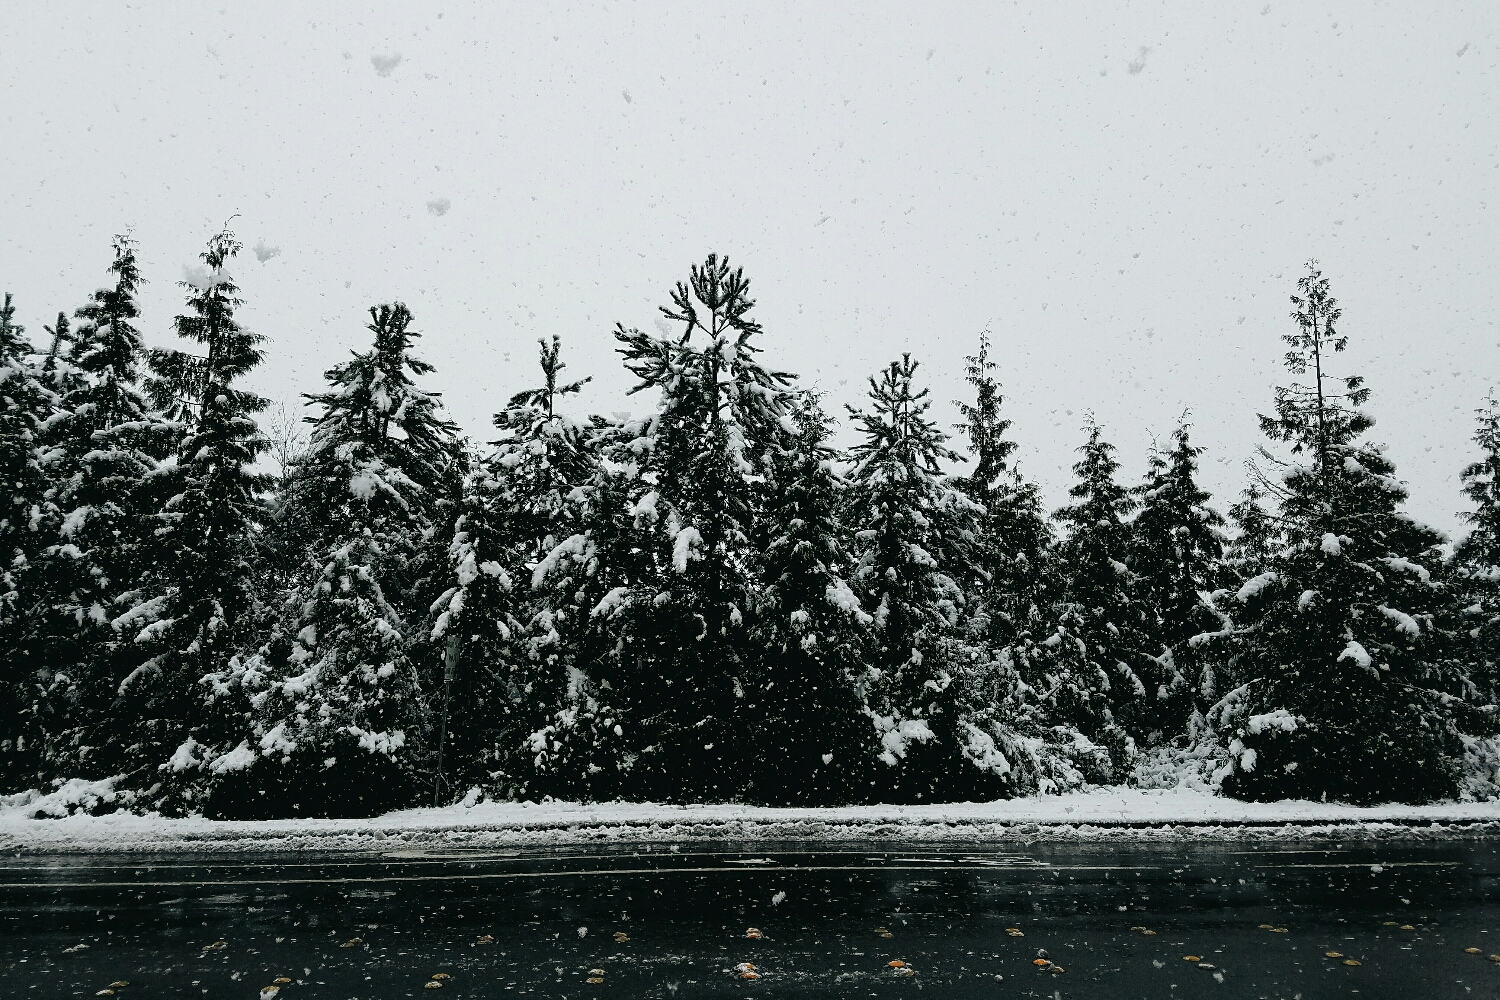 Giant, soggy snowflakes made for a very wet walk to the grocery store!